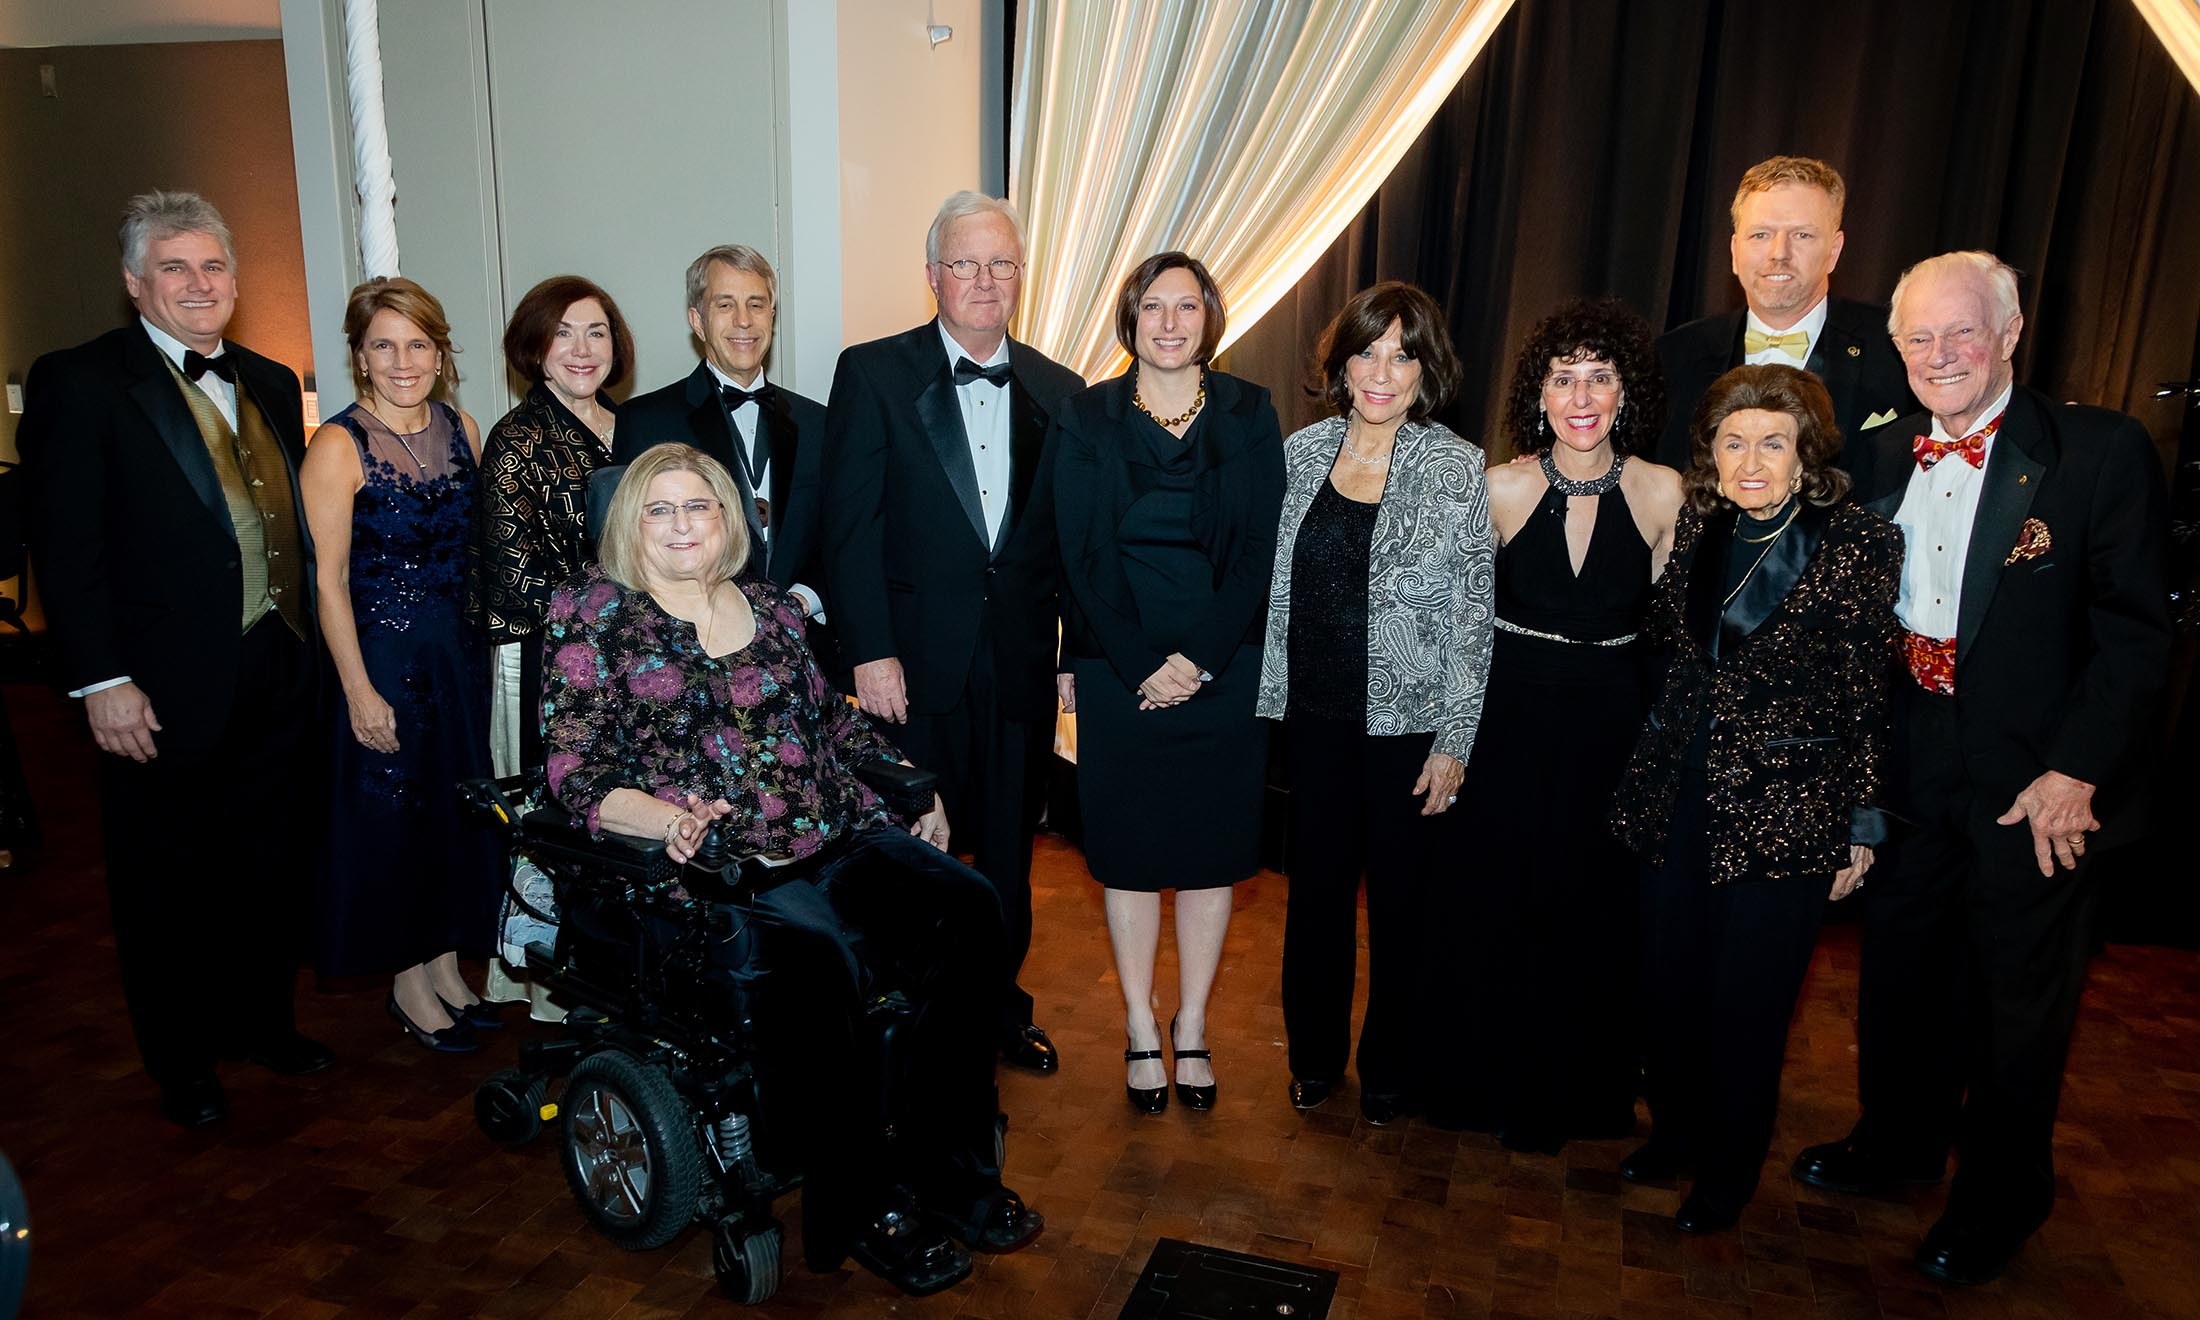 Group photo of steering committee at gala event